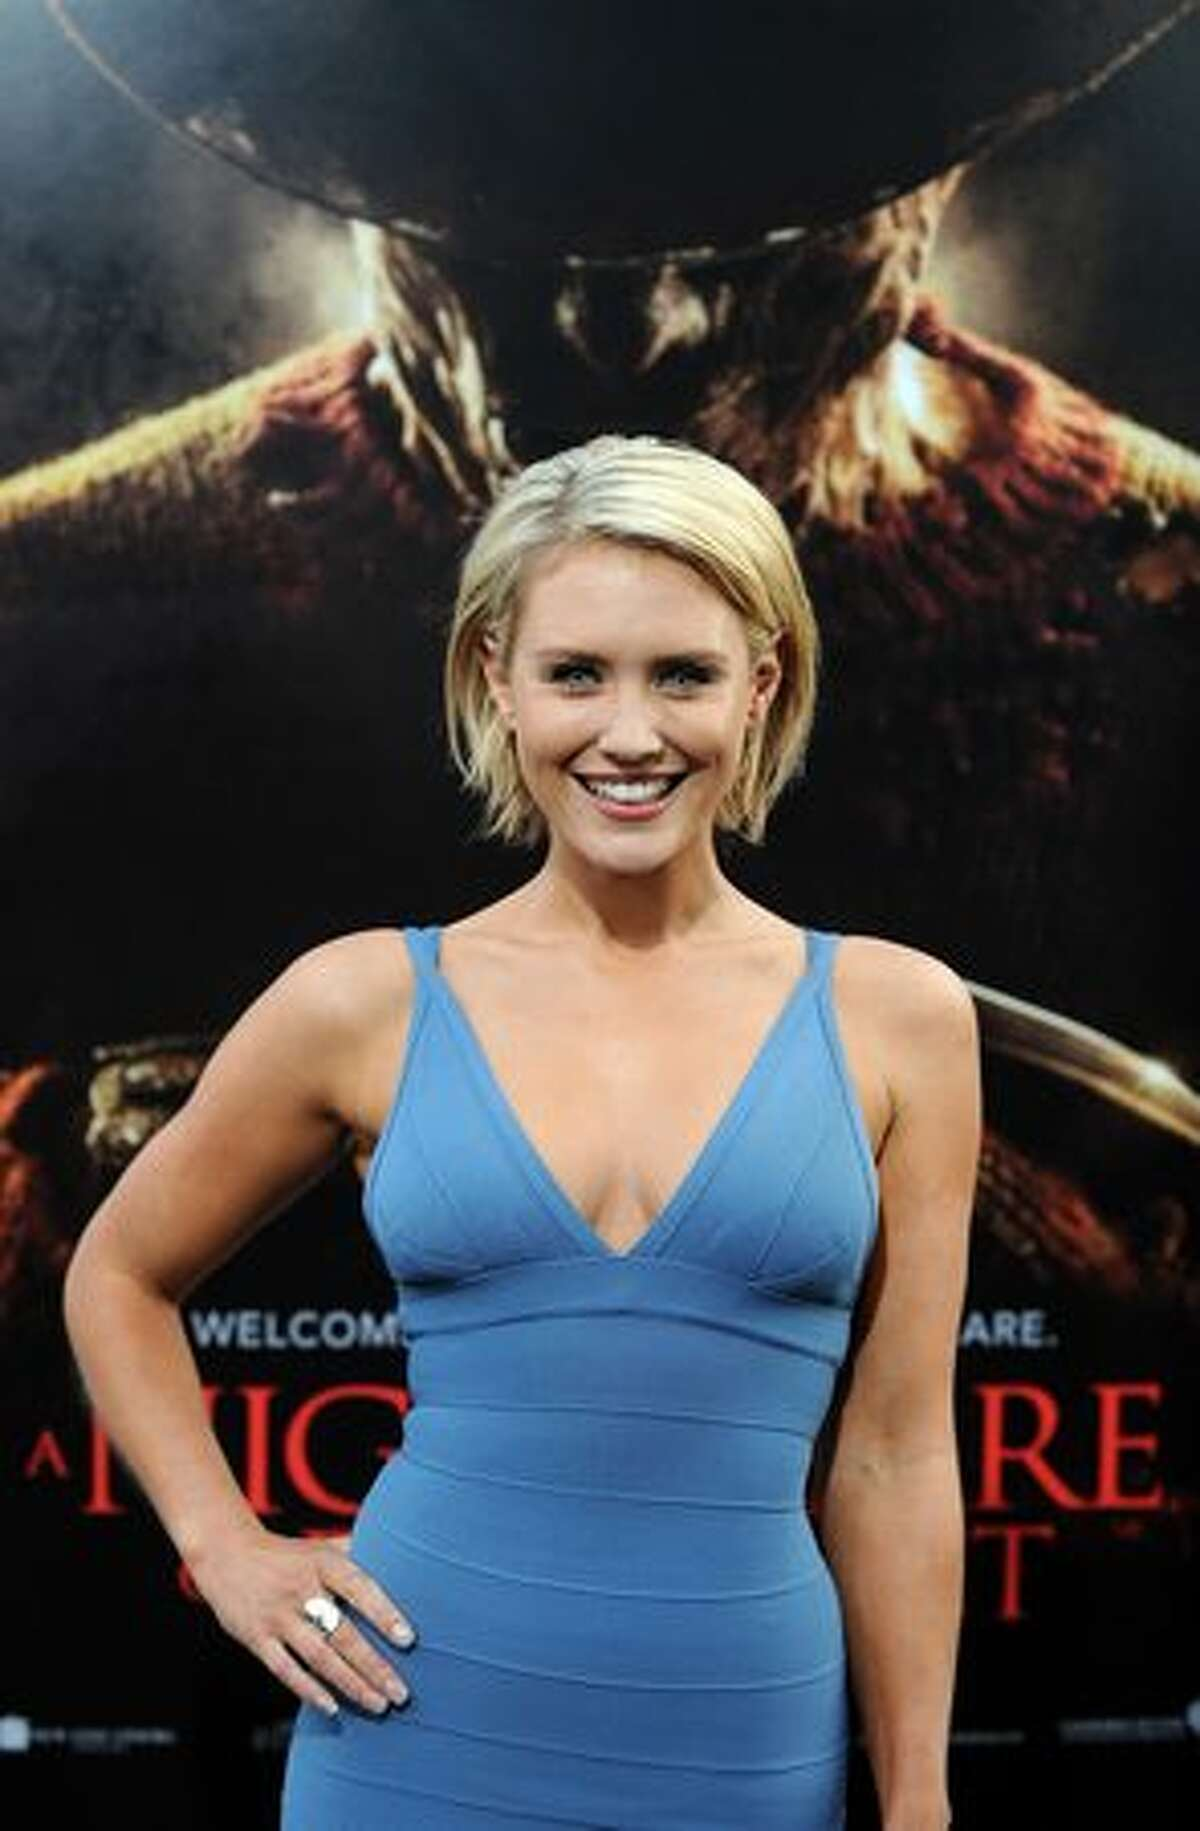 """Australian actress Nicky Whelan arrives at the World premiere of """"A Nightmare on Elm Street"""" in Hollywood, California, on April 27. Photo credit GABRIEL BOUYS/AFP/Getty Images"""